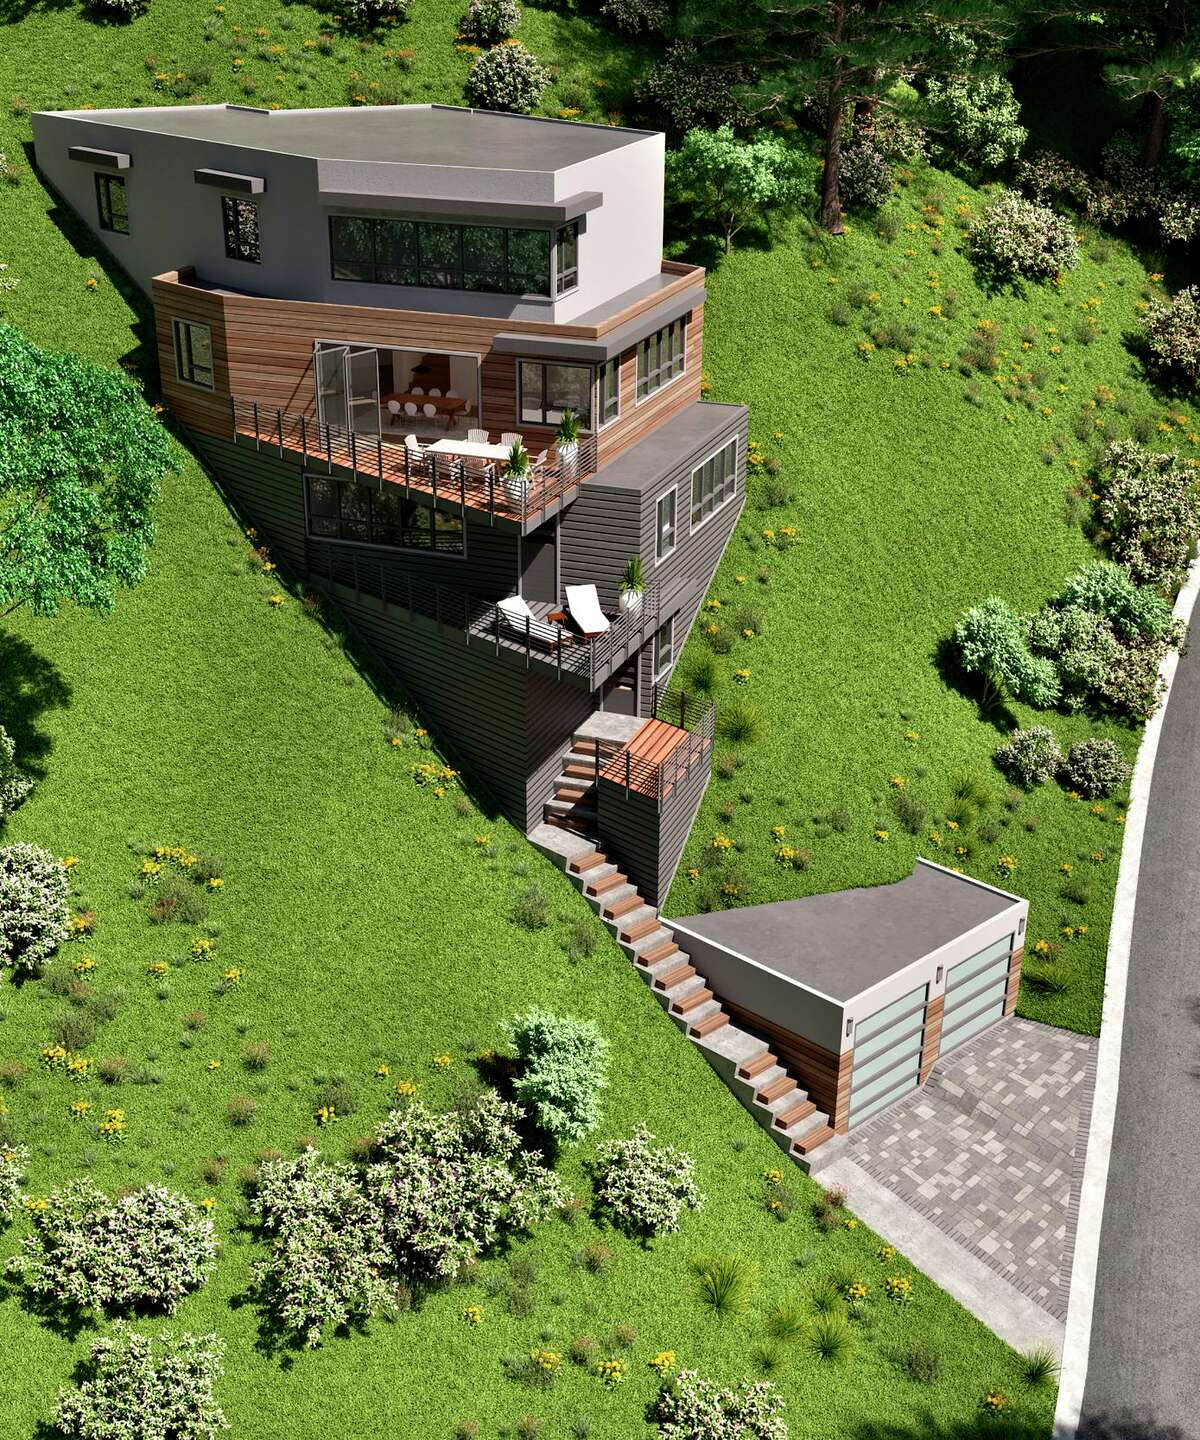 6881 Sobrante Road in Oakland is a .33-acre lot that includes approved plans for a hillside four-bedroom, four-bathroom contemporary conceptualized by designer and developer Nick Depratti.